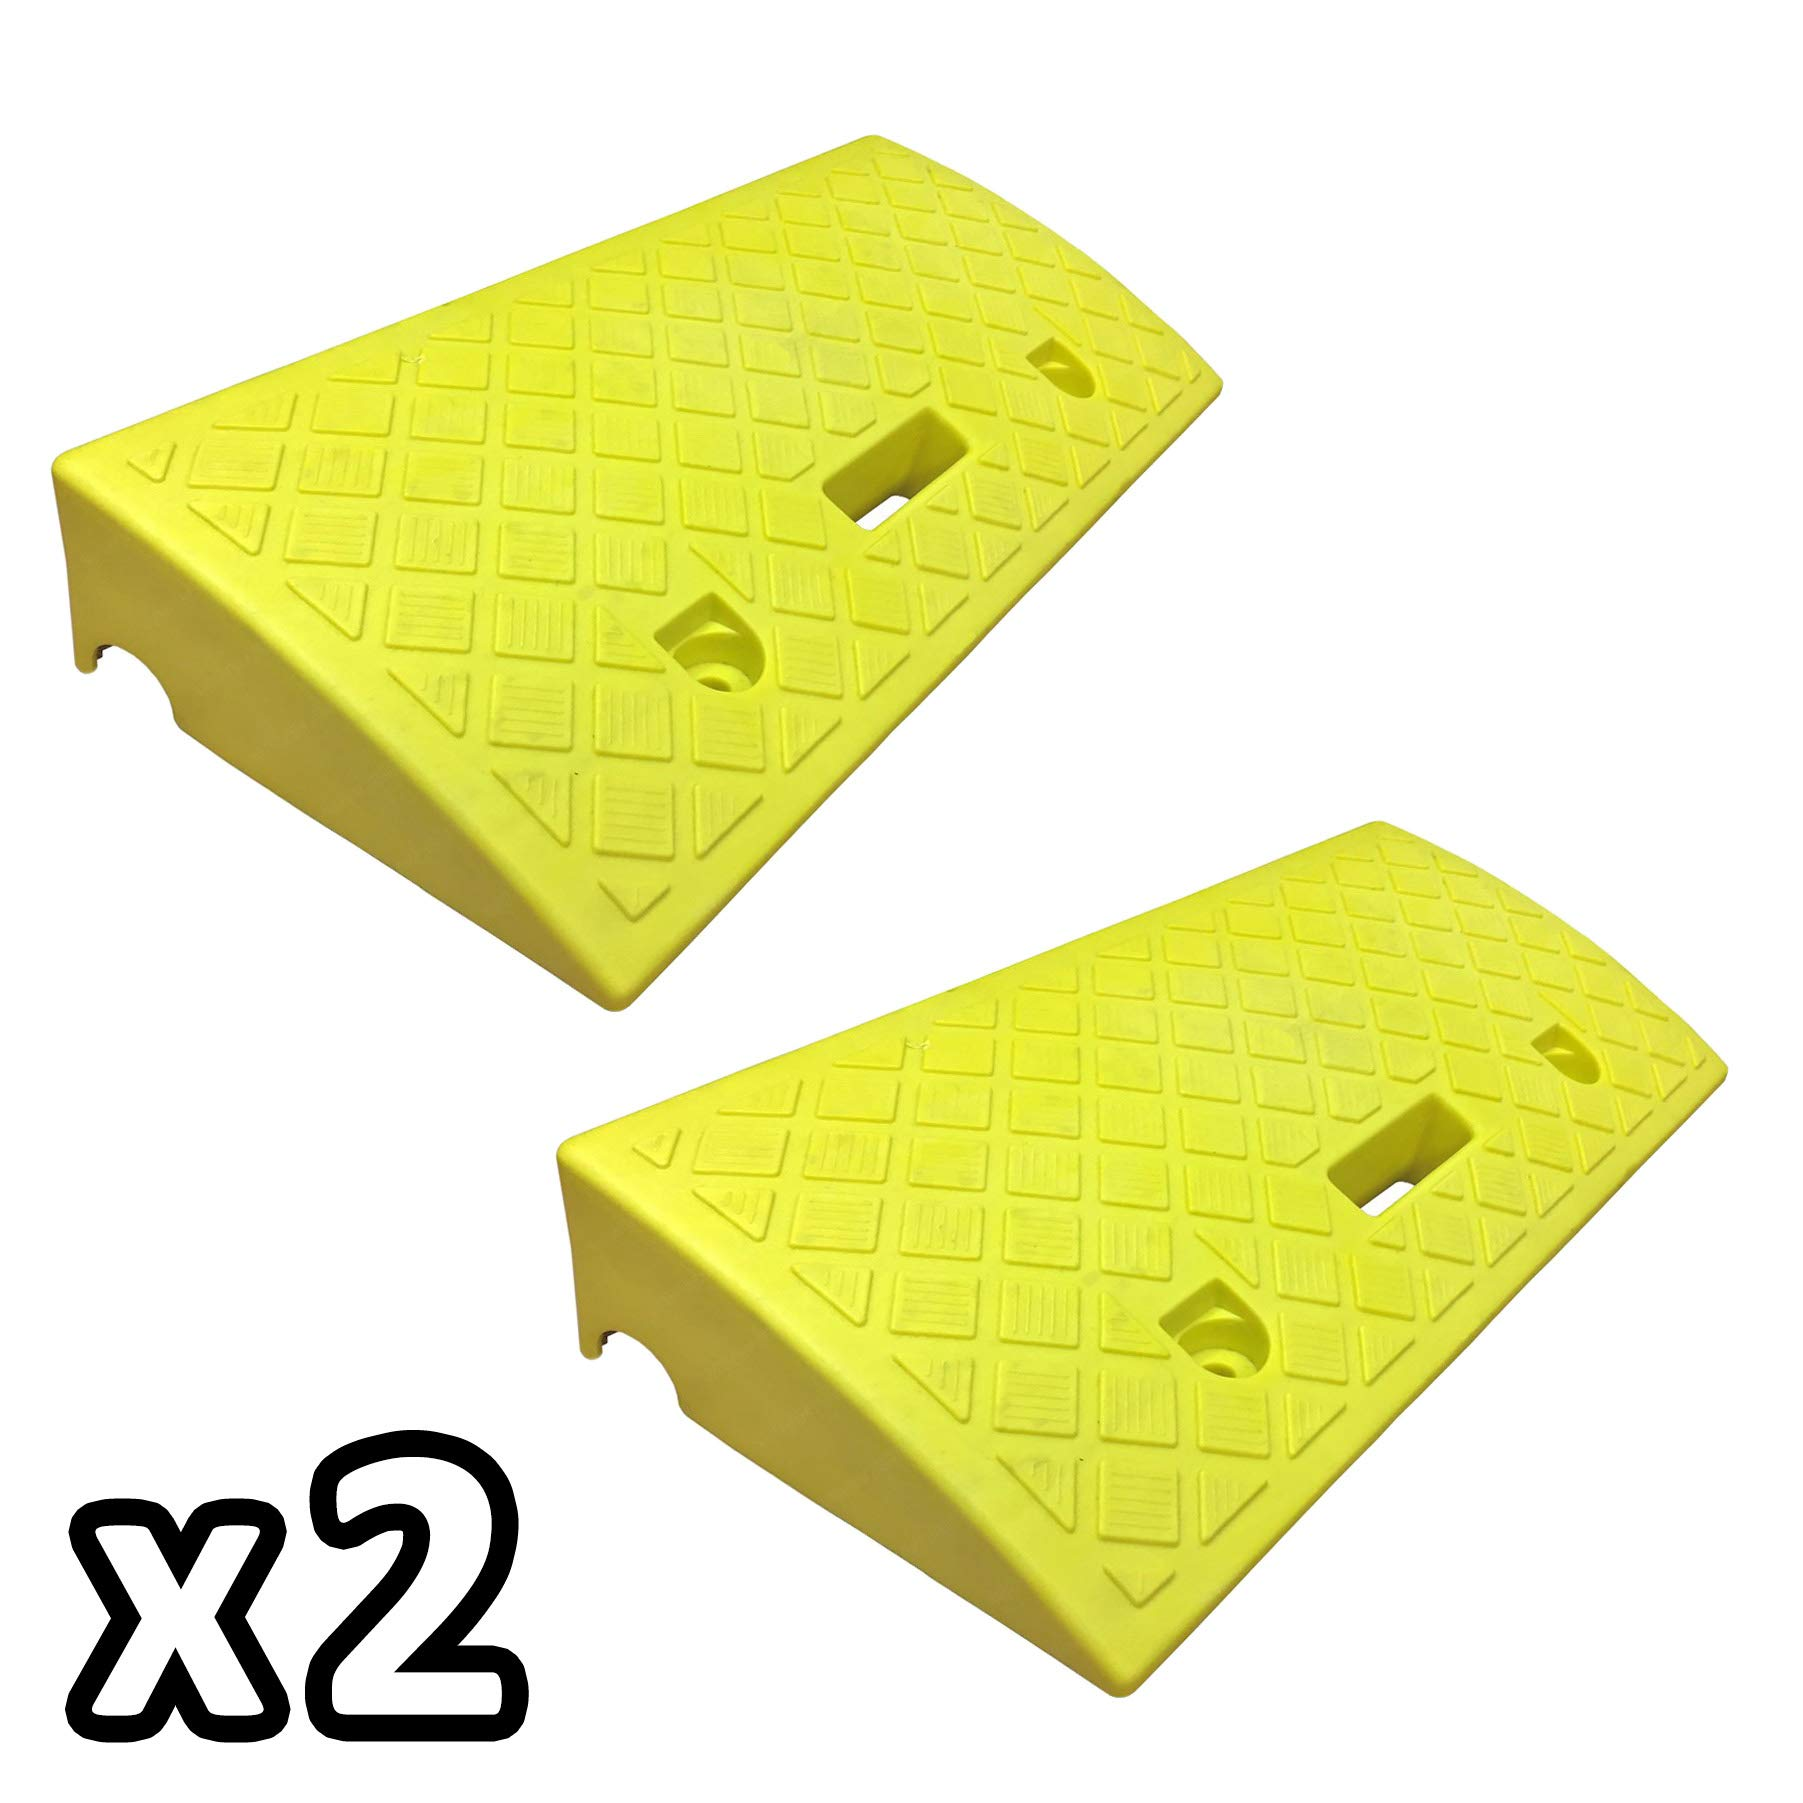 Electriduct 4'' Polypropylene Plastic Portable Pair of Curb Ramps (KIT of 2) Color: Yellow